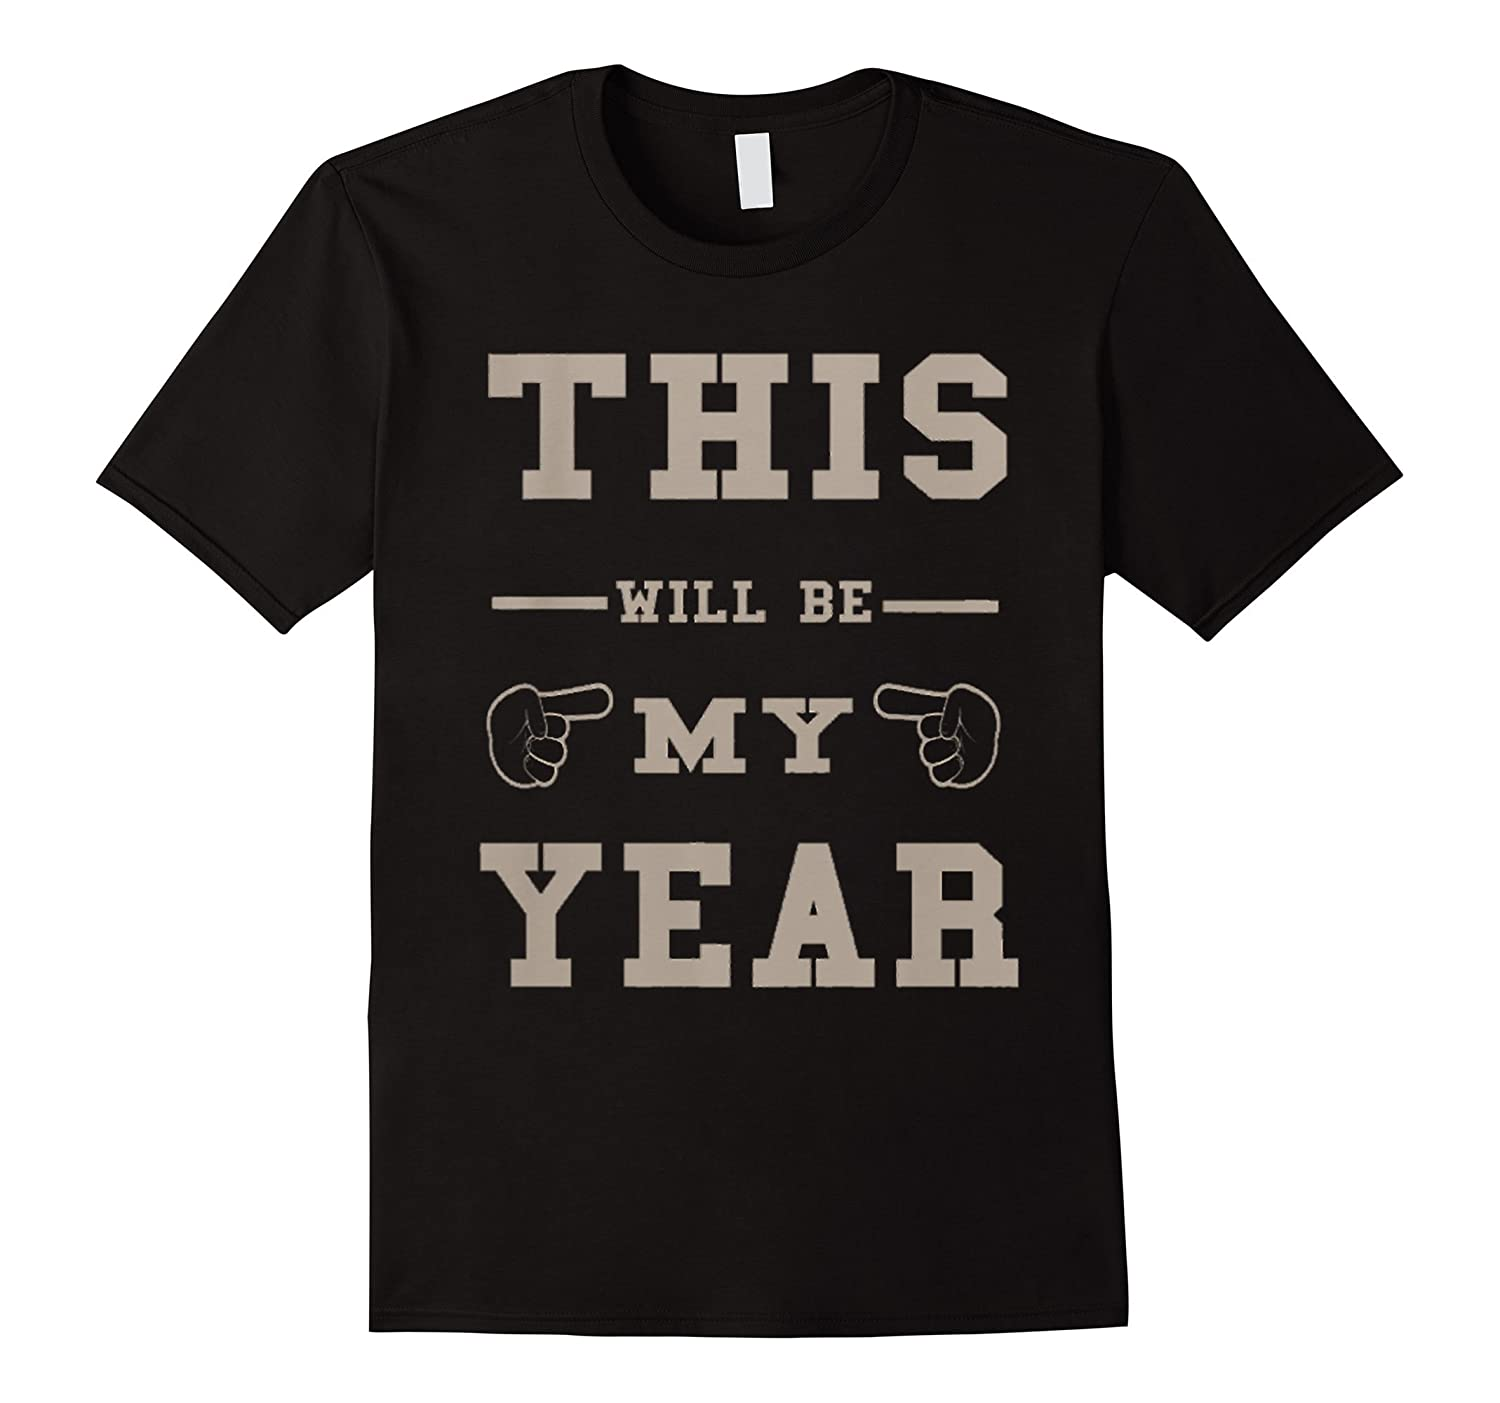 2017 THIS WILL BE MY YEAR T-SHIRT-CL